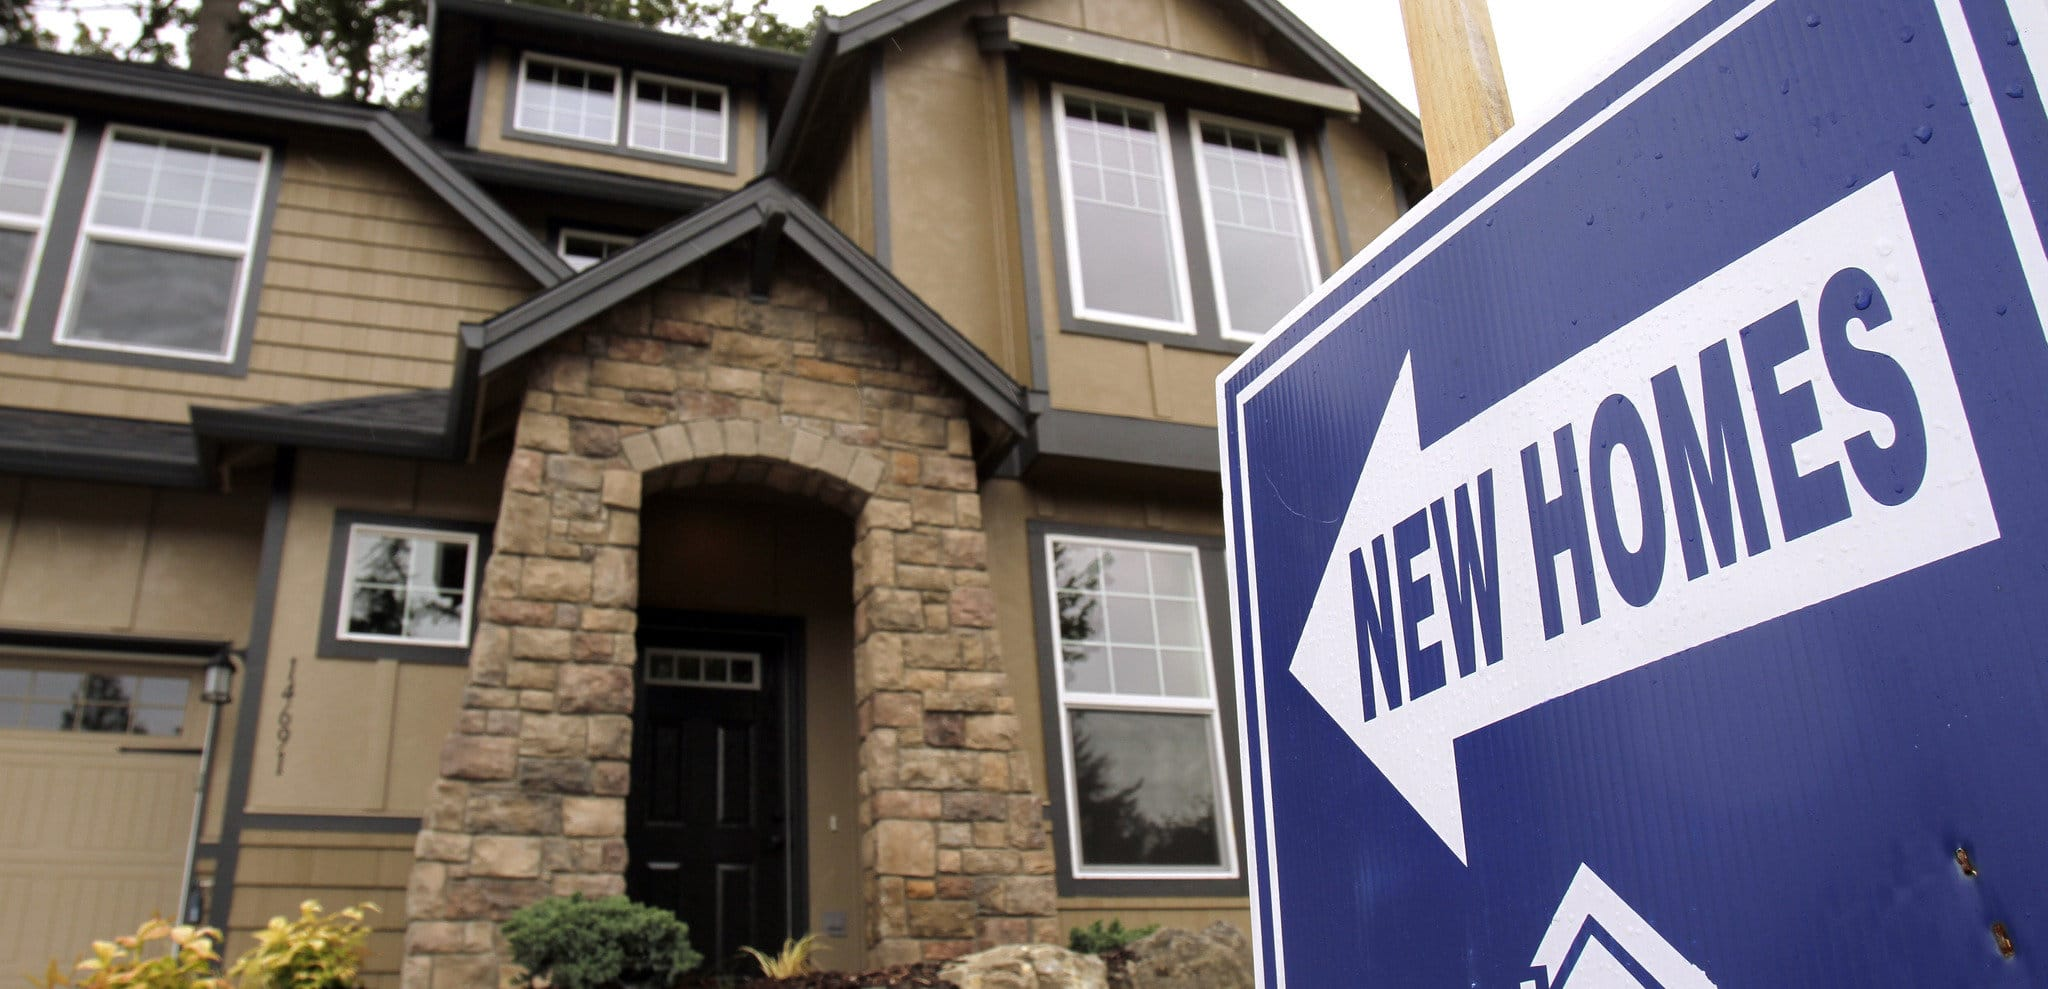 Image for New home sales slump across the nation in April - RealtyBizNews: Real Estate News